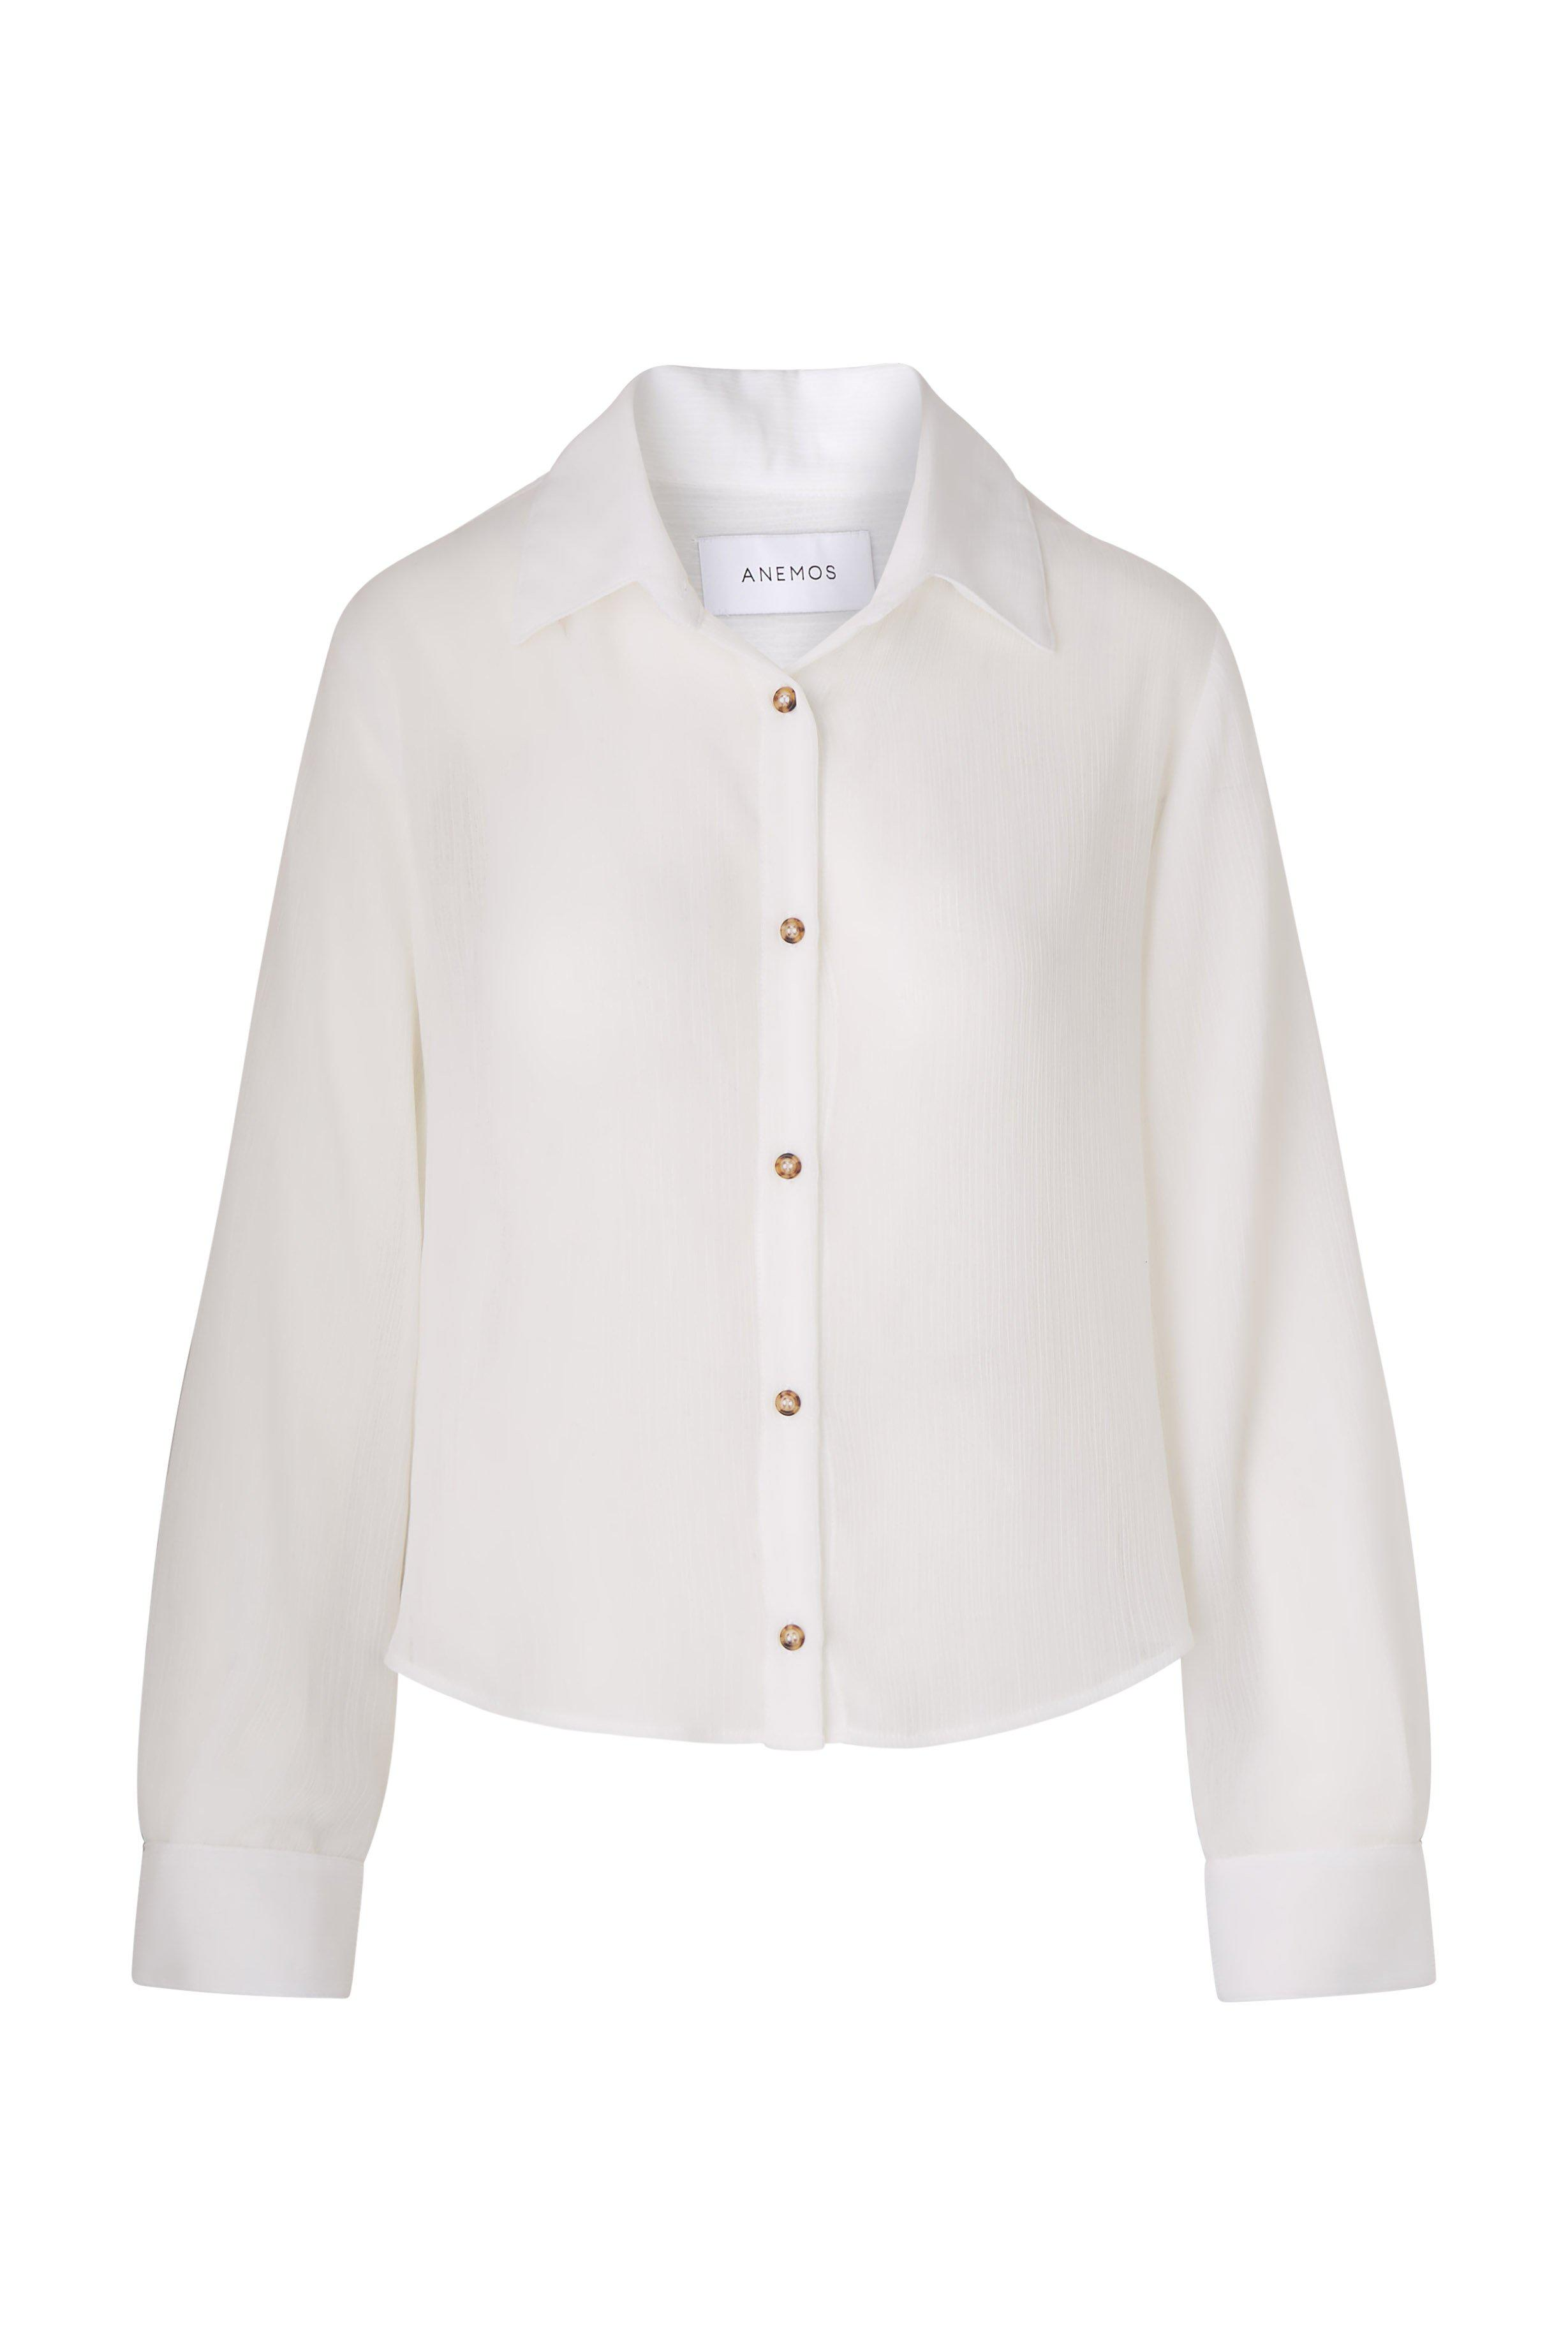 The Phillips Long Sleeve Button-Down Shirt in Sheer Yoryu Crinkle